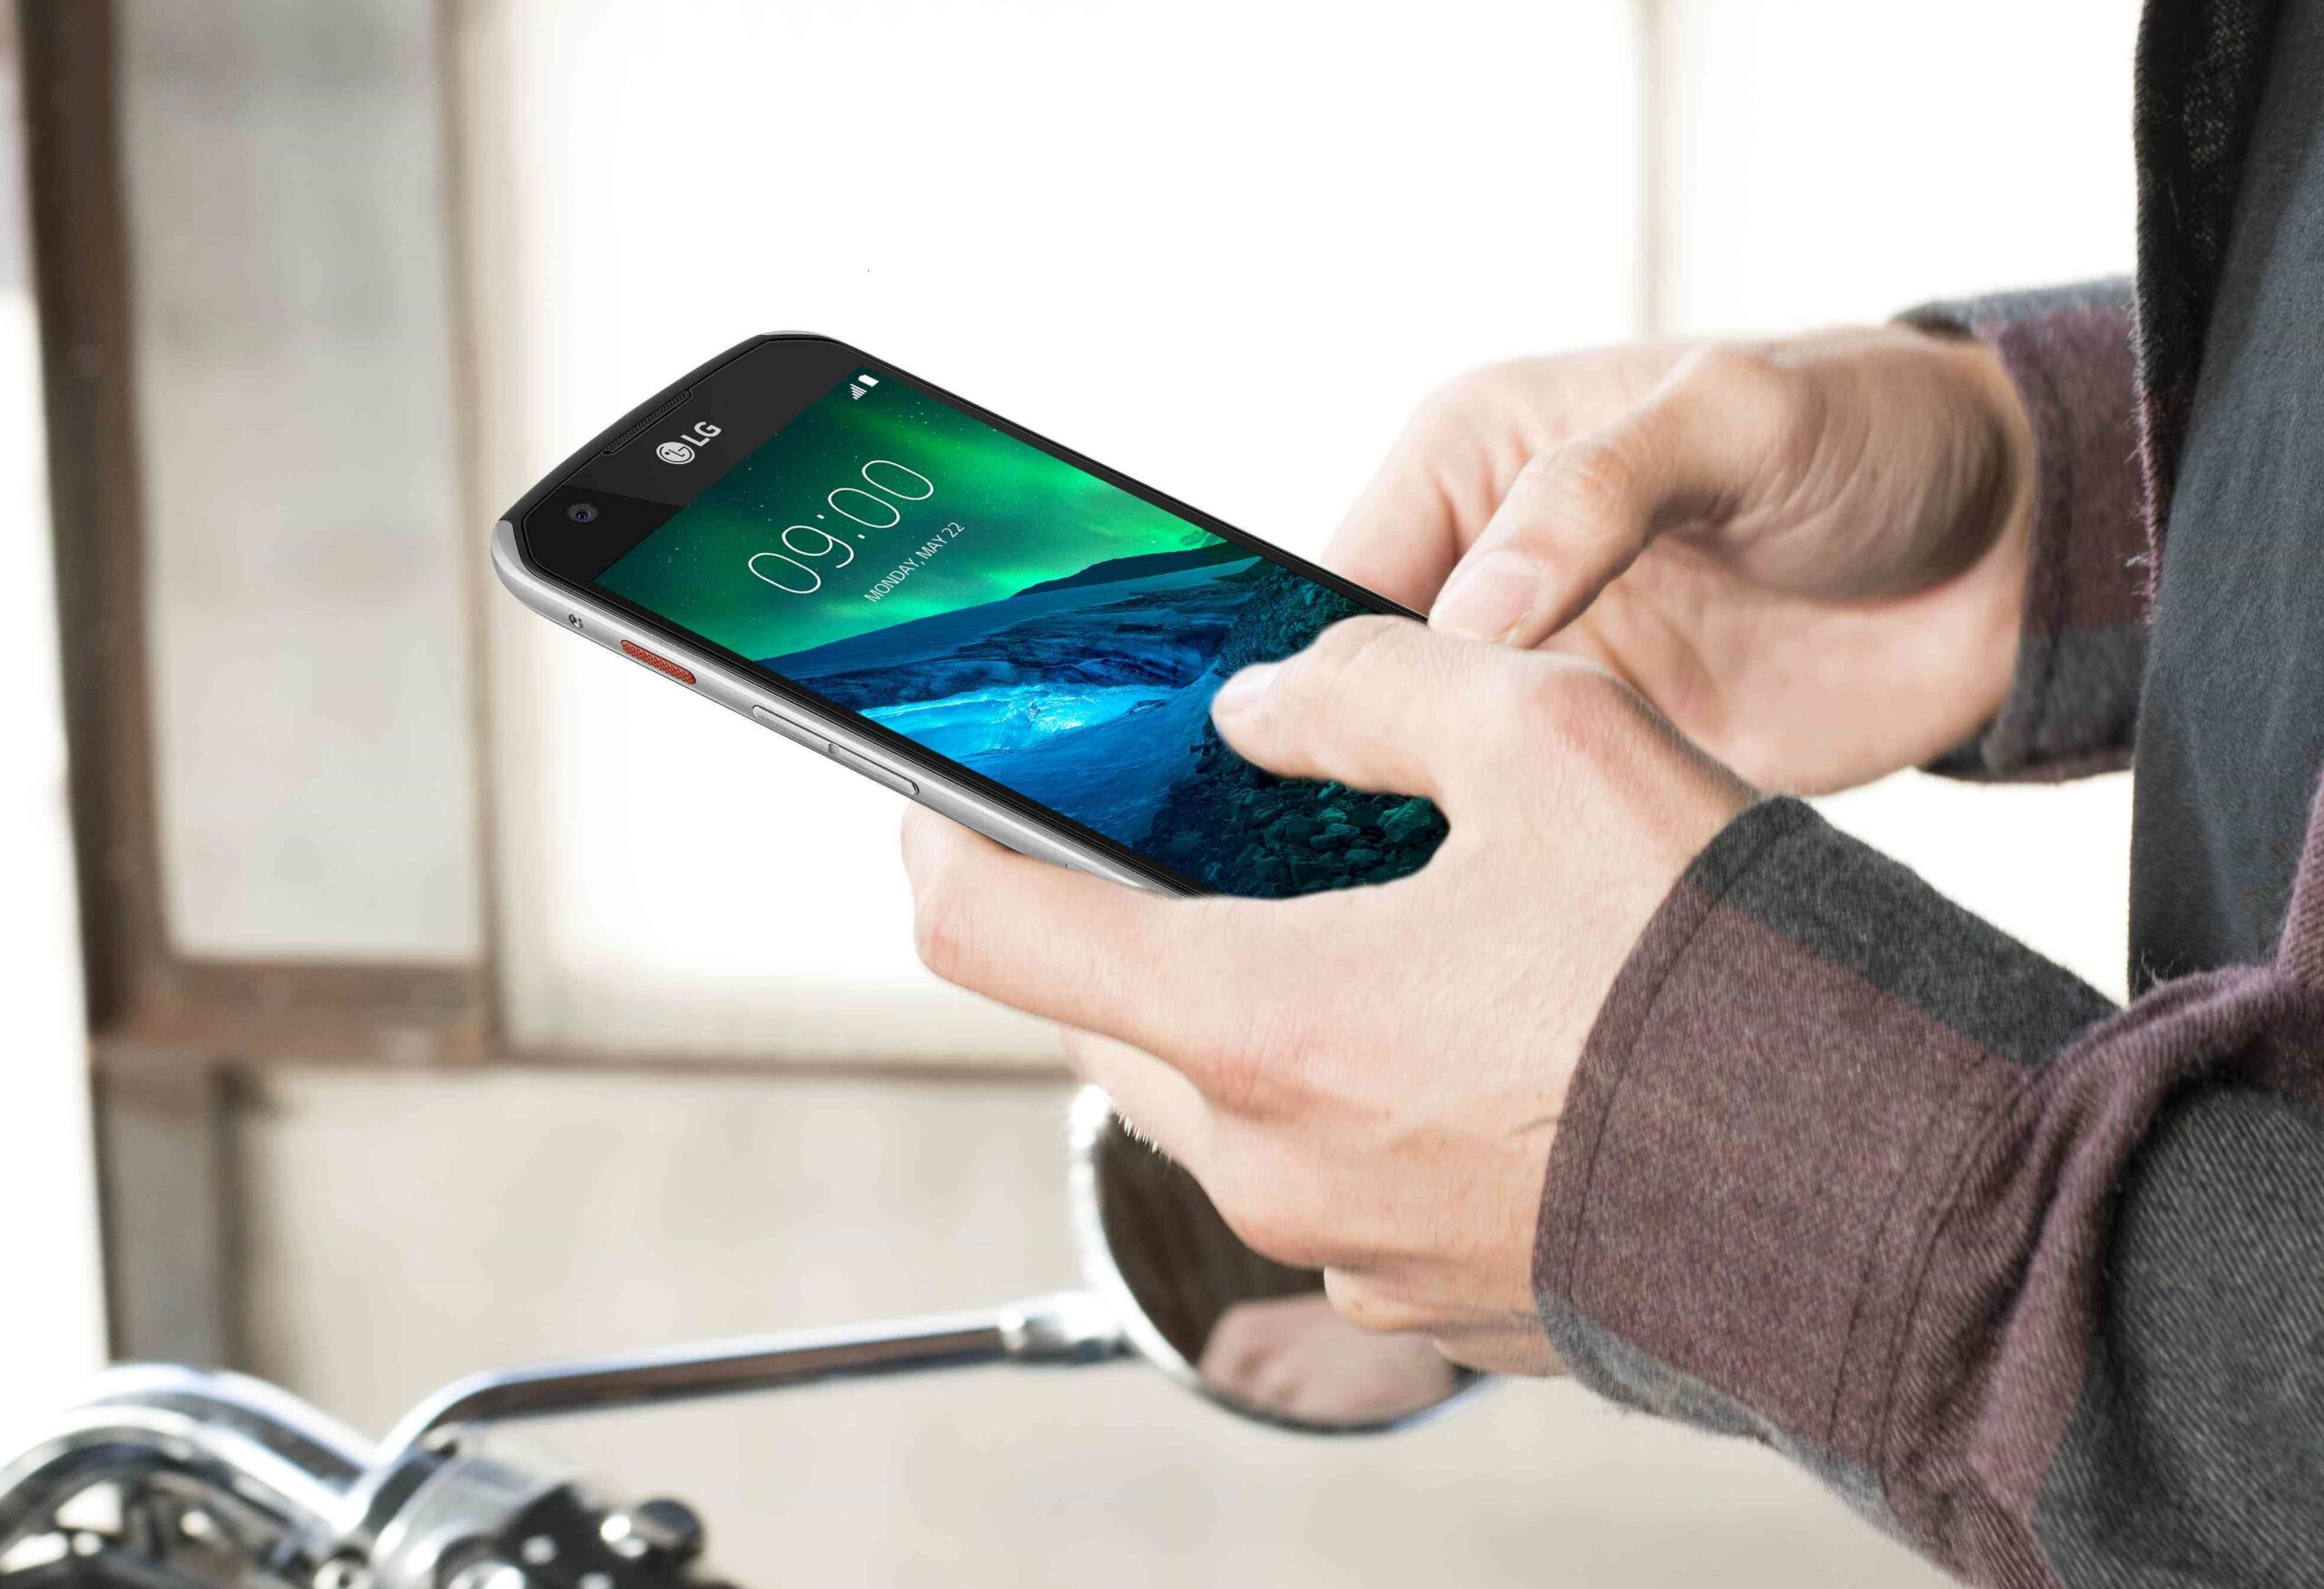 Close-up view of a pair of hands holding the LG X Venture smartphone